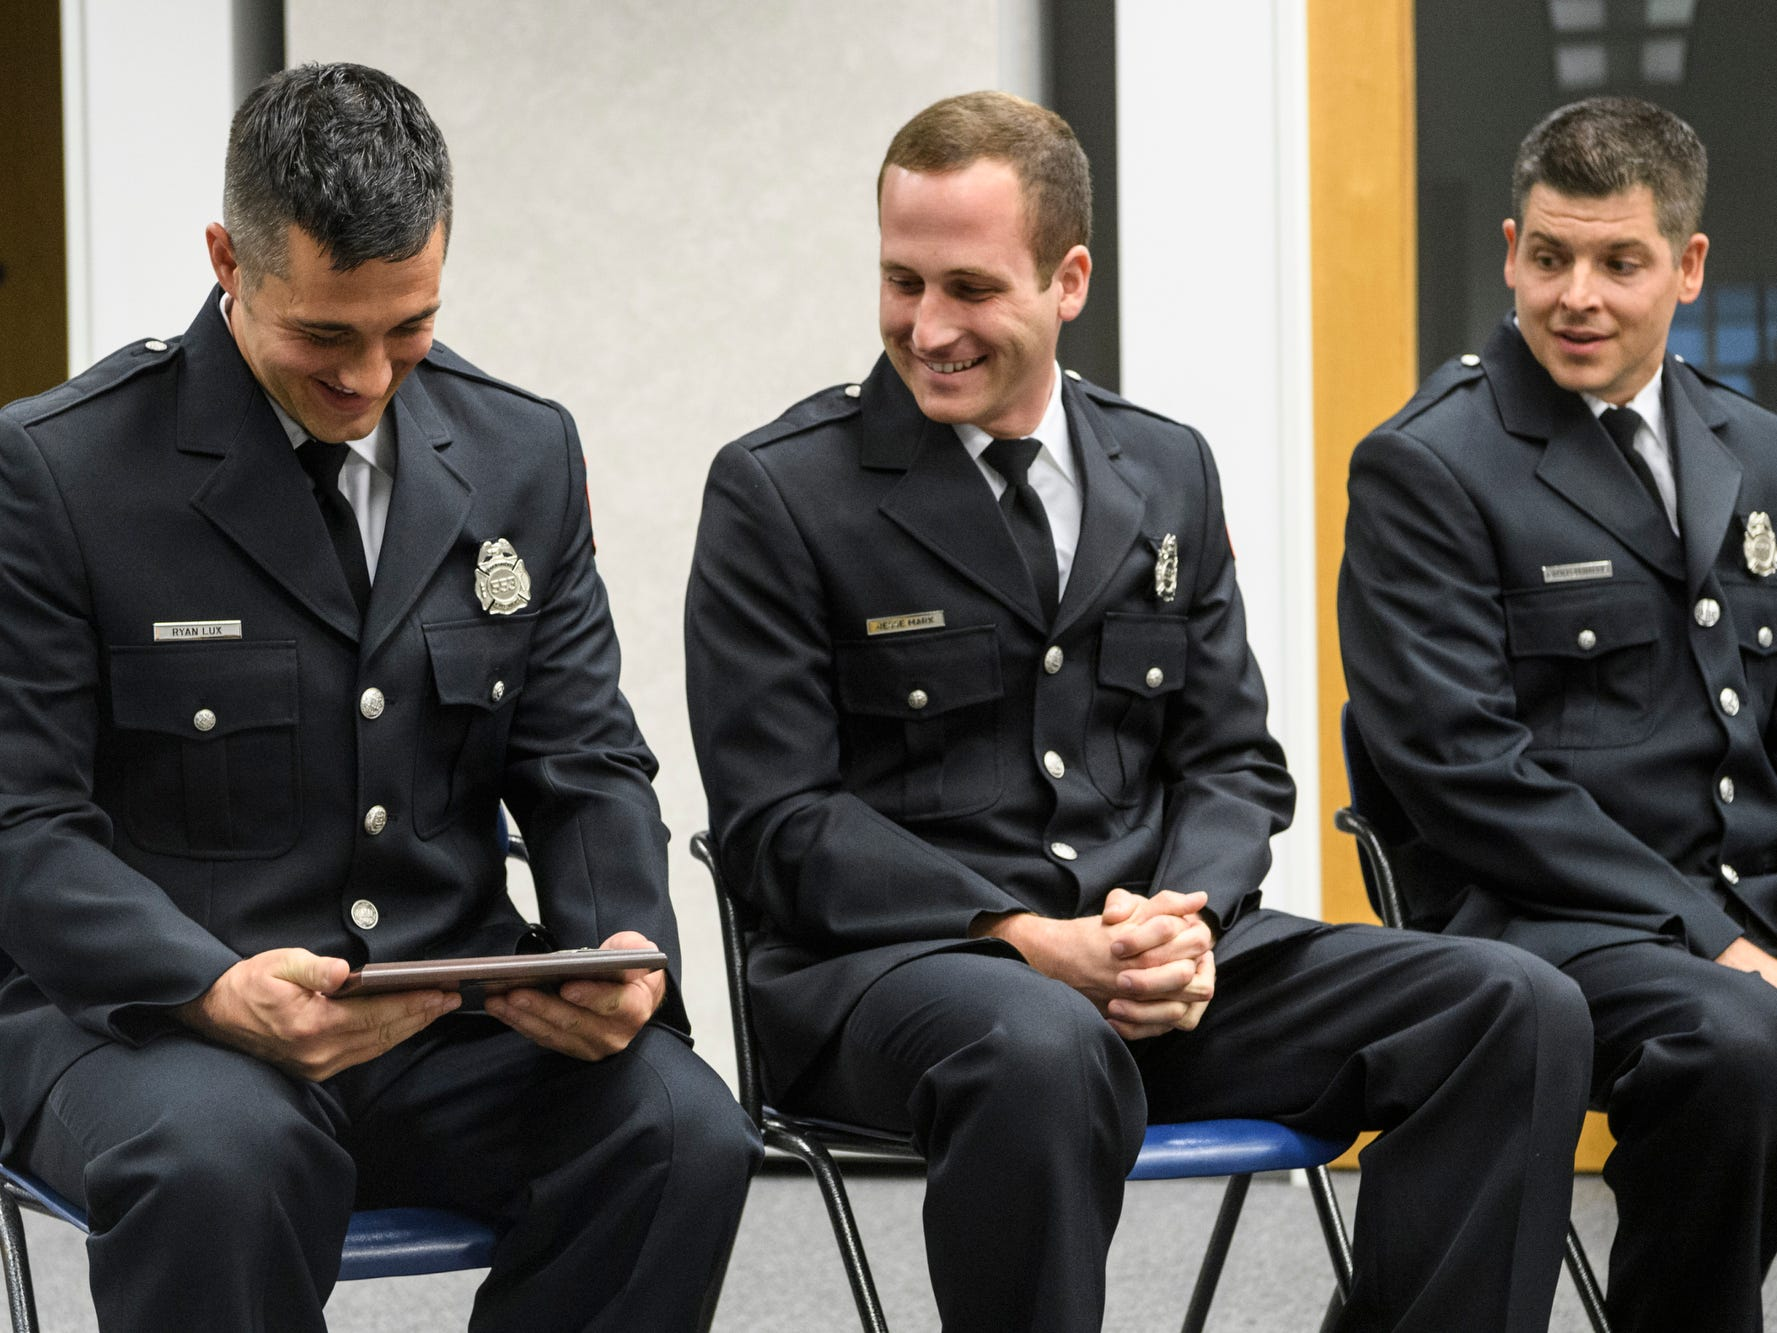 Ryan Lux, from left, looks at his Distinguished Recruit plaque as fellow firefighter graduates Jesse Marx and Cameron Harris sit next to him during their graduation ceremony at the American Red Cross Headquarters in Evansville, Ind., Friday, Oct. 12, 2018.